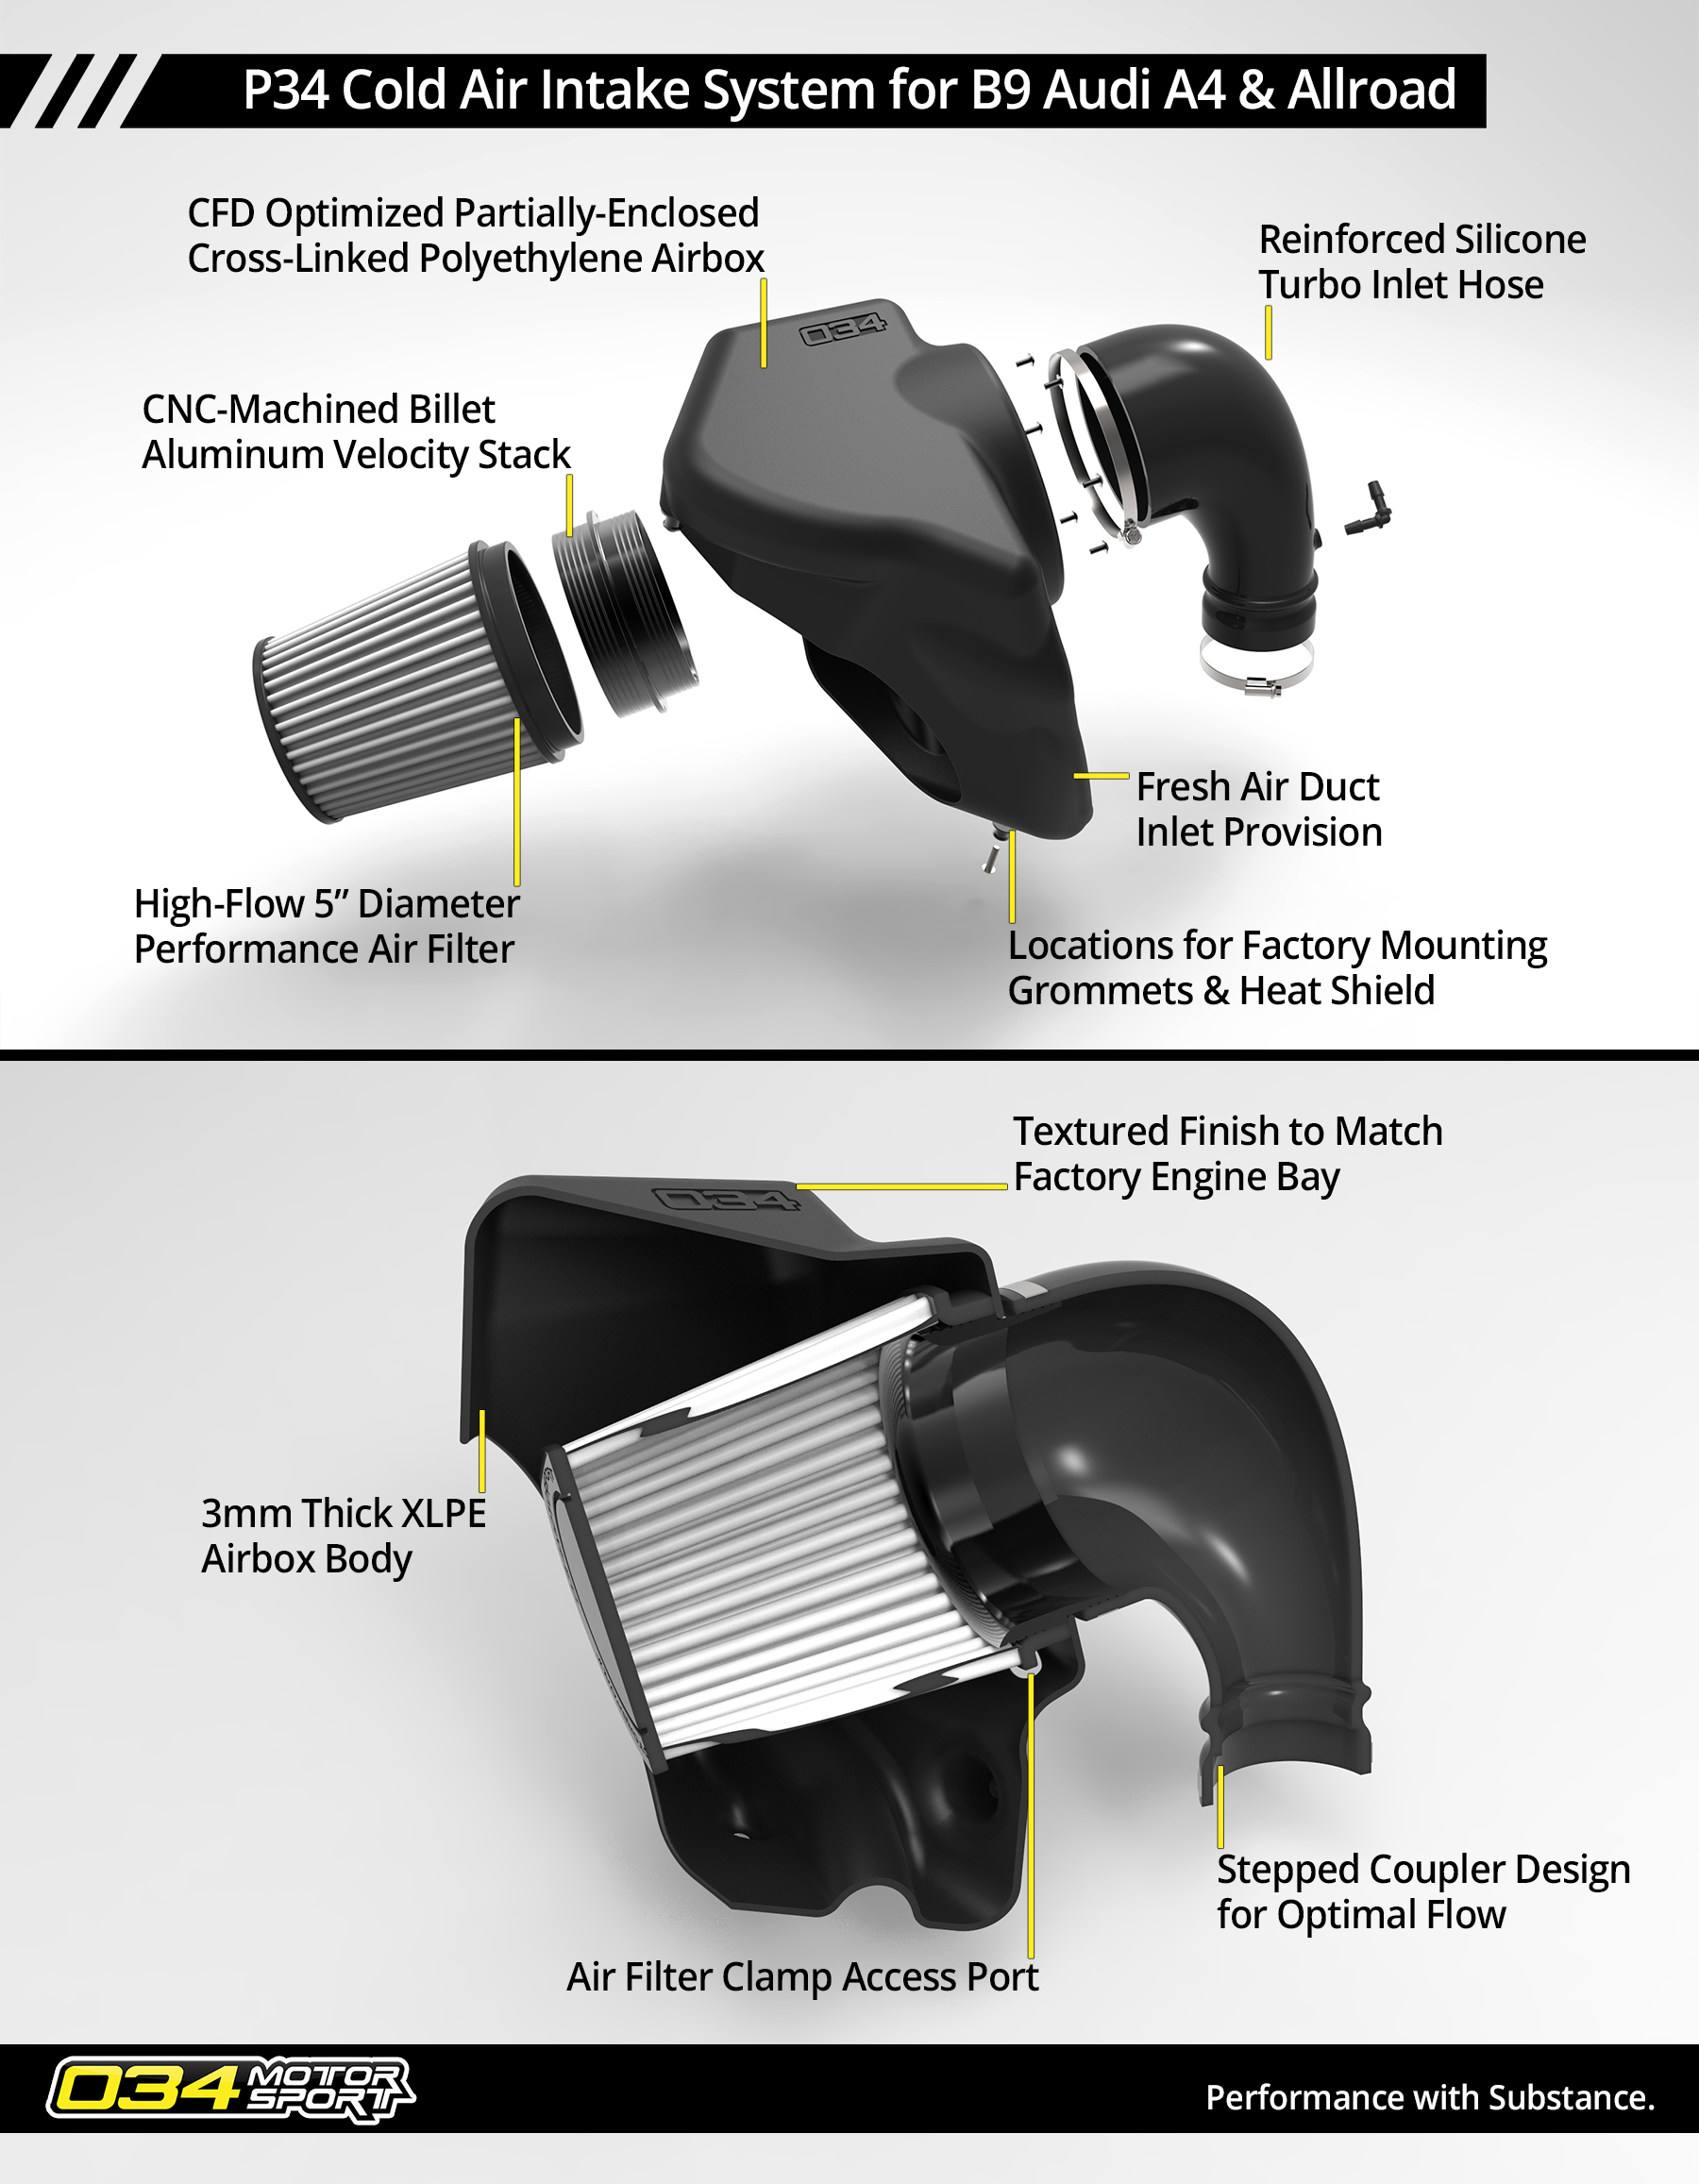 B9 Audi A4/Allroad Cold Air Intake Info Sheet